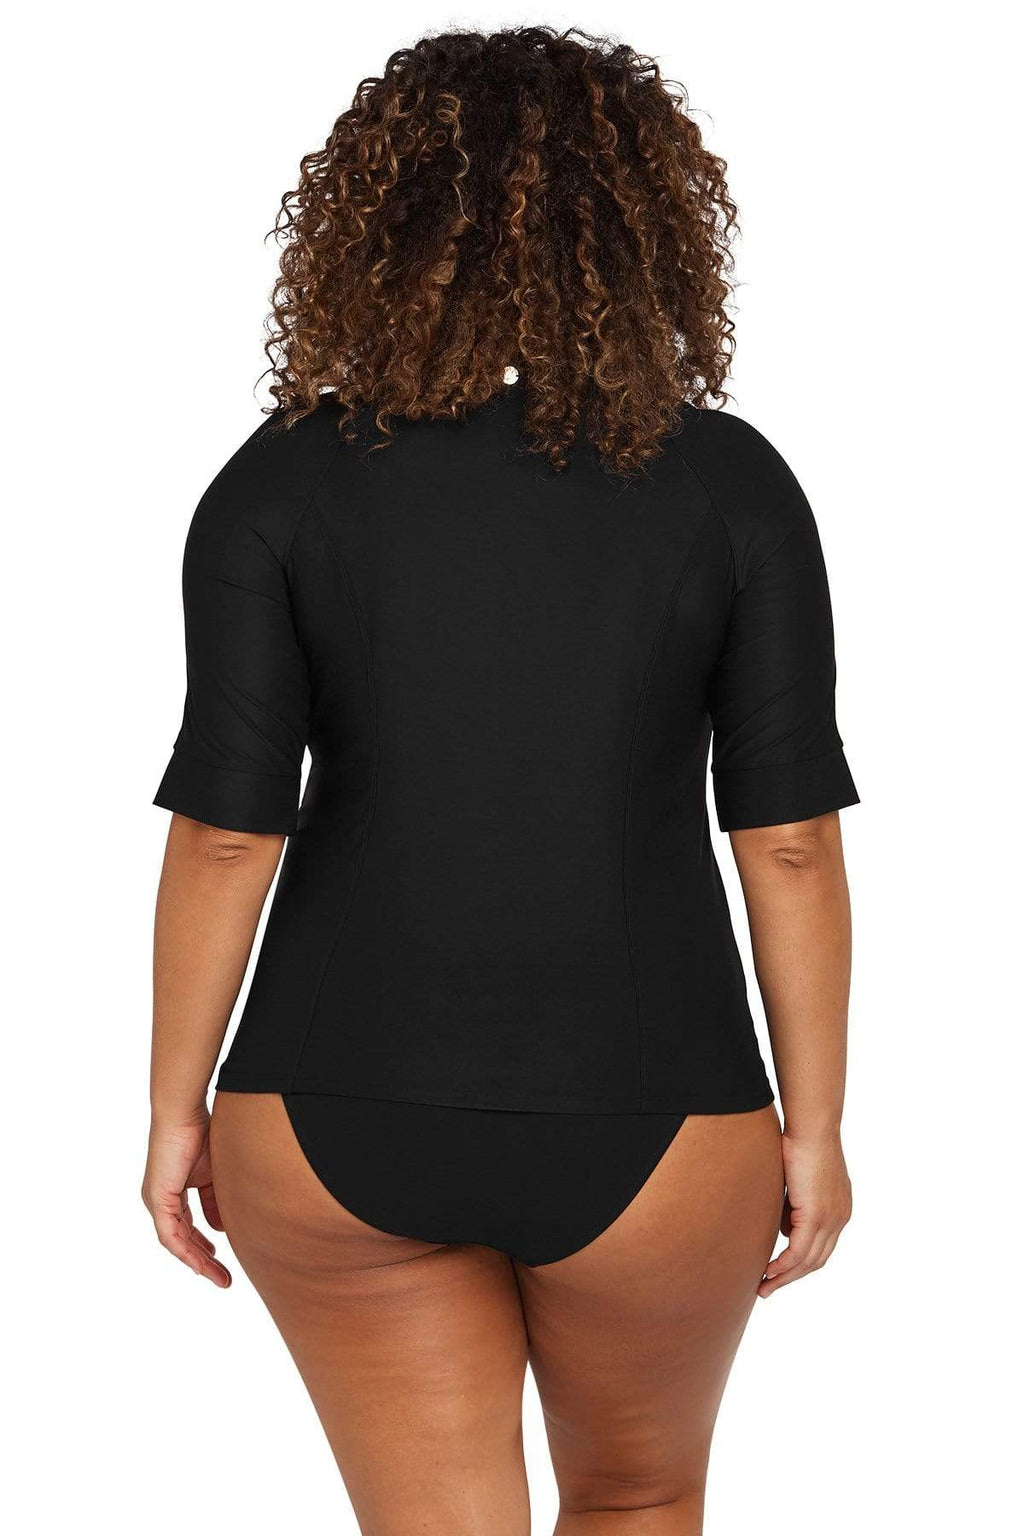 Black Hues Sunsafe Short Sleeve Top